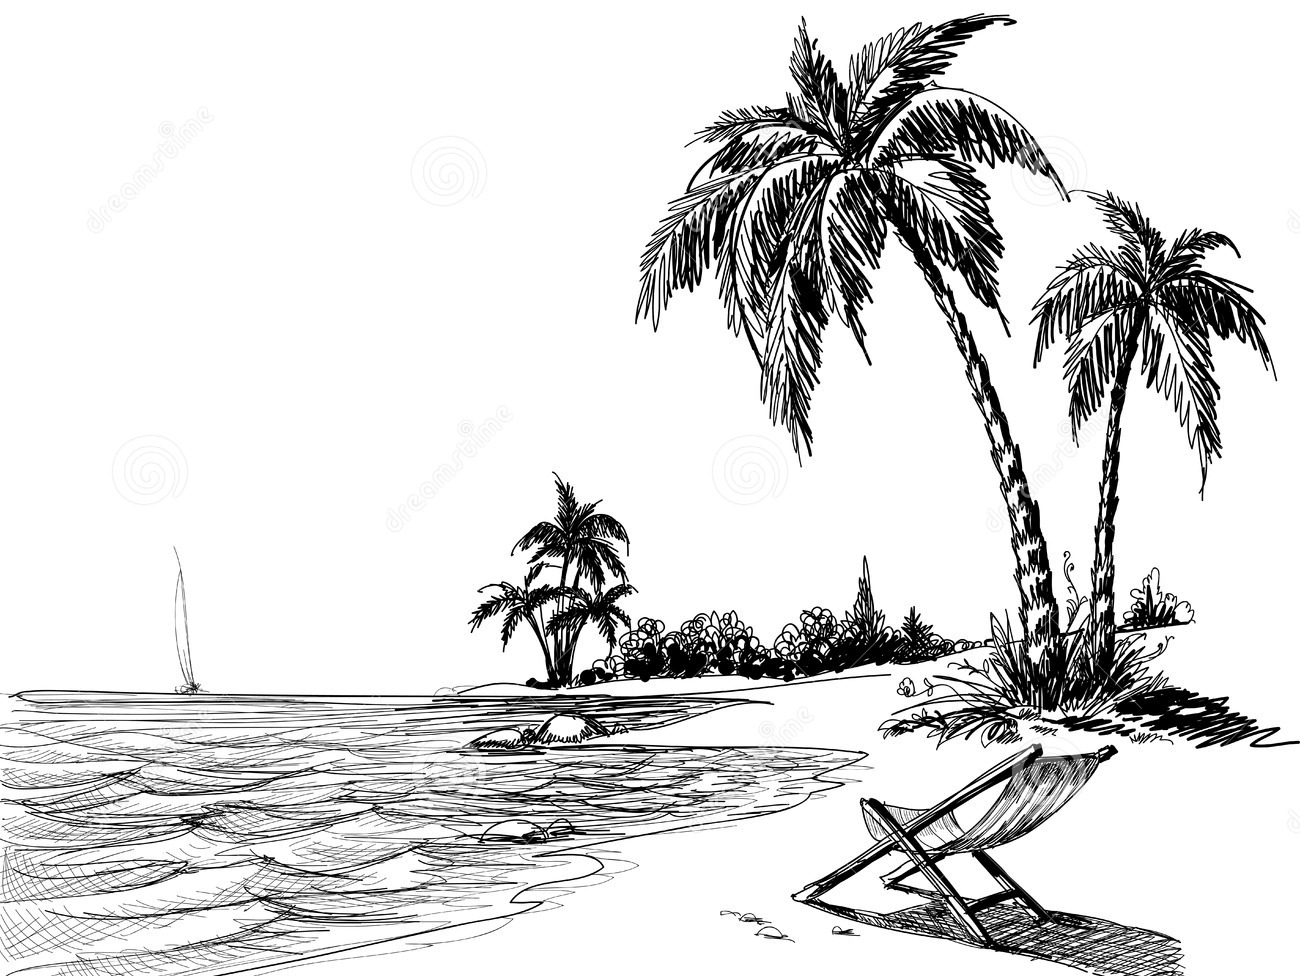 beach drawing beach line art printed photo background 7407 with beach drawing